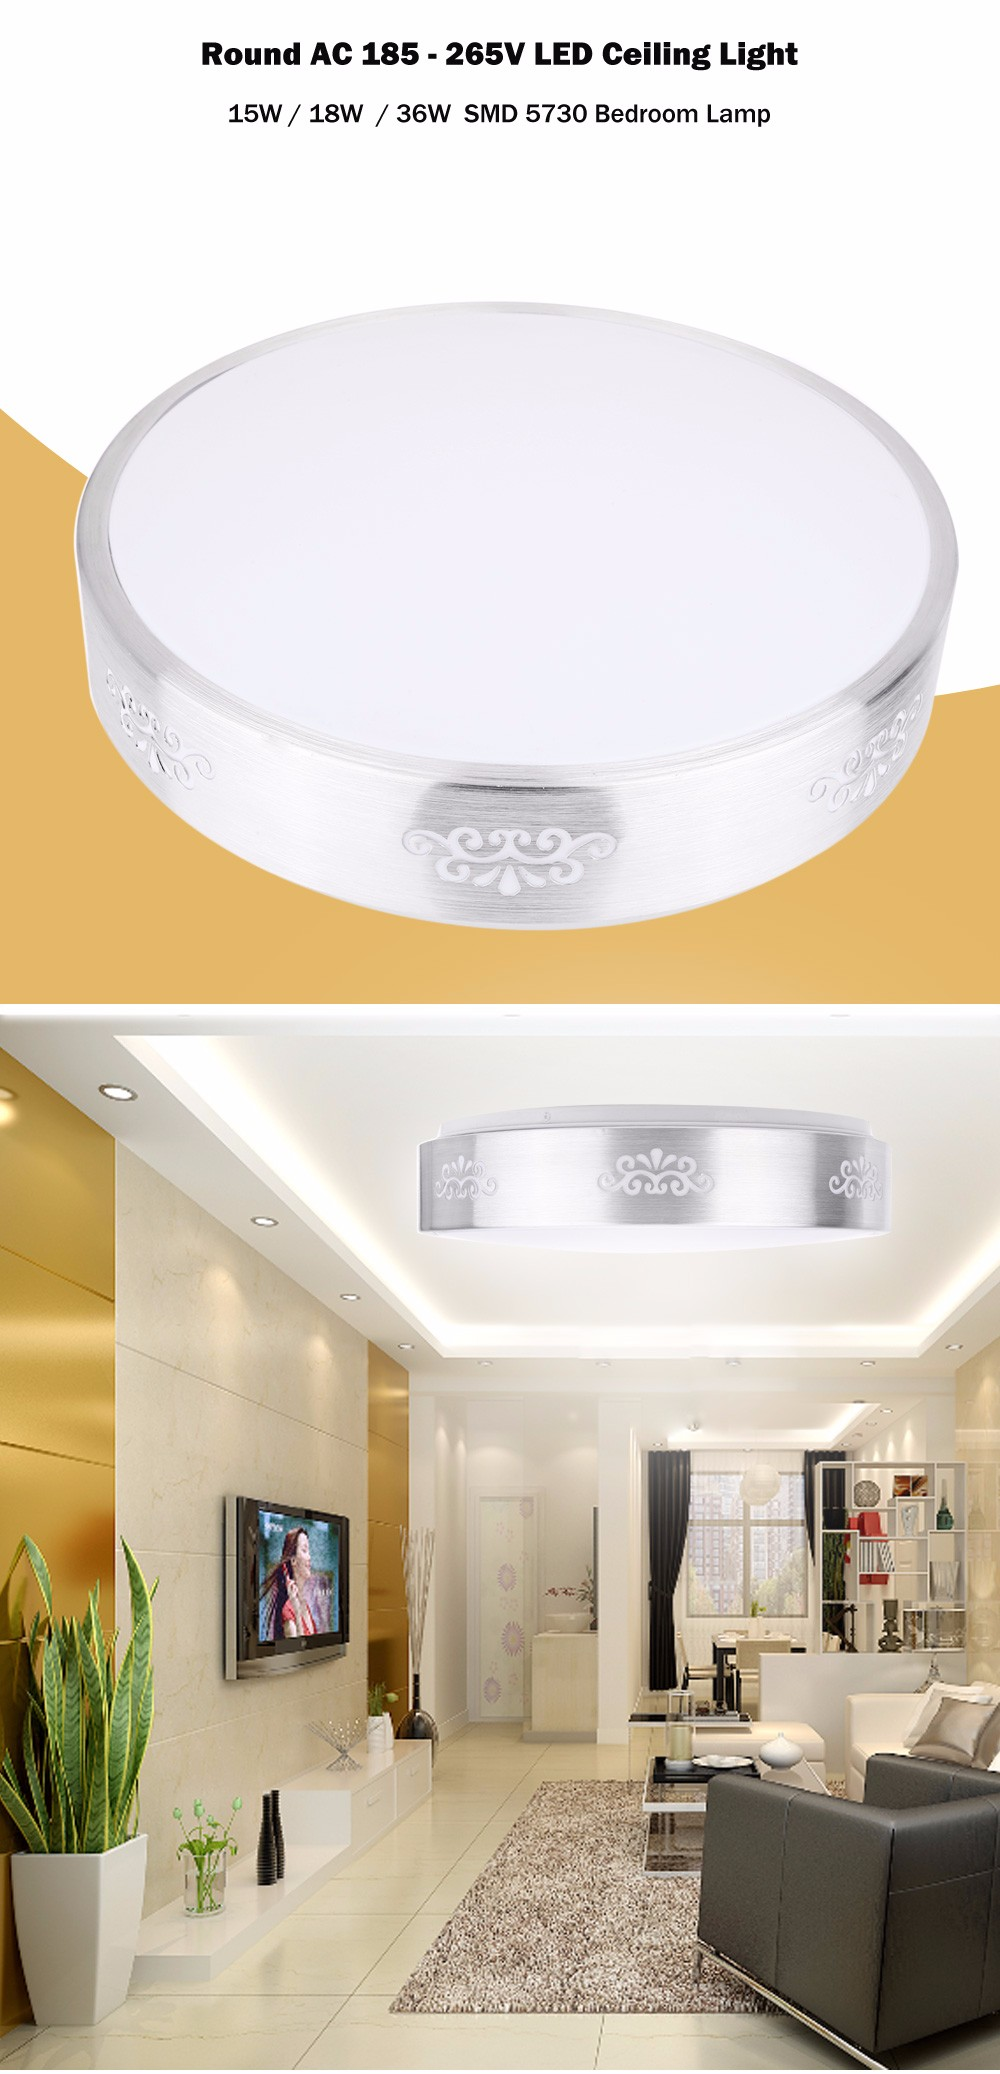 Round 35CM 15W 1200LM AC 185 - 265V SMD 5730 LED Ceiling Light Bedroom Lamp